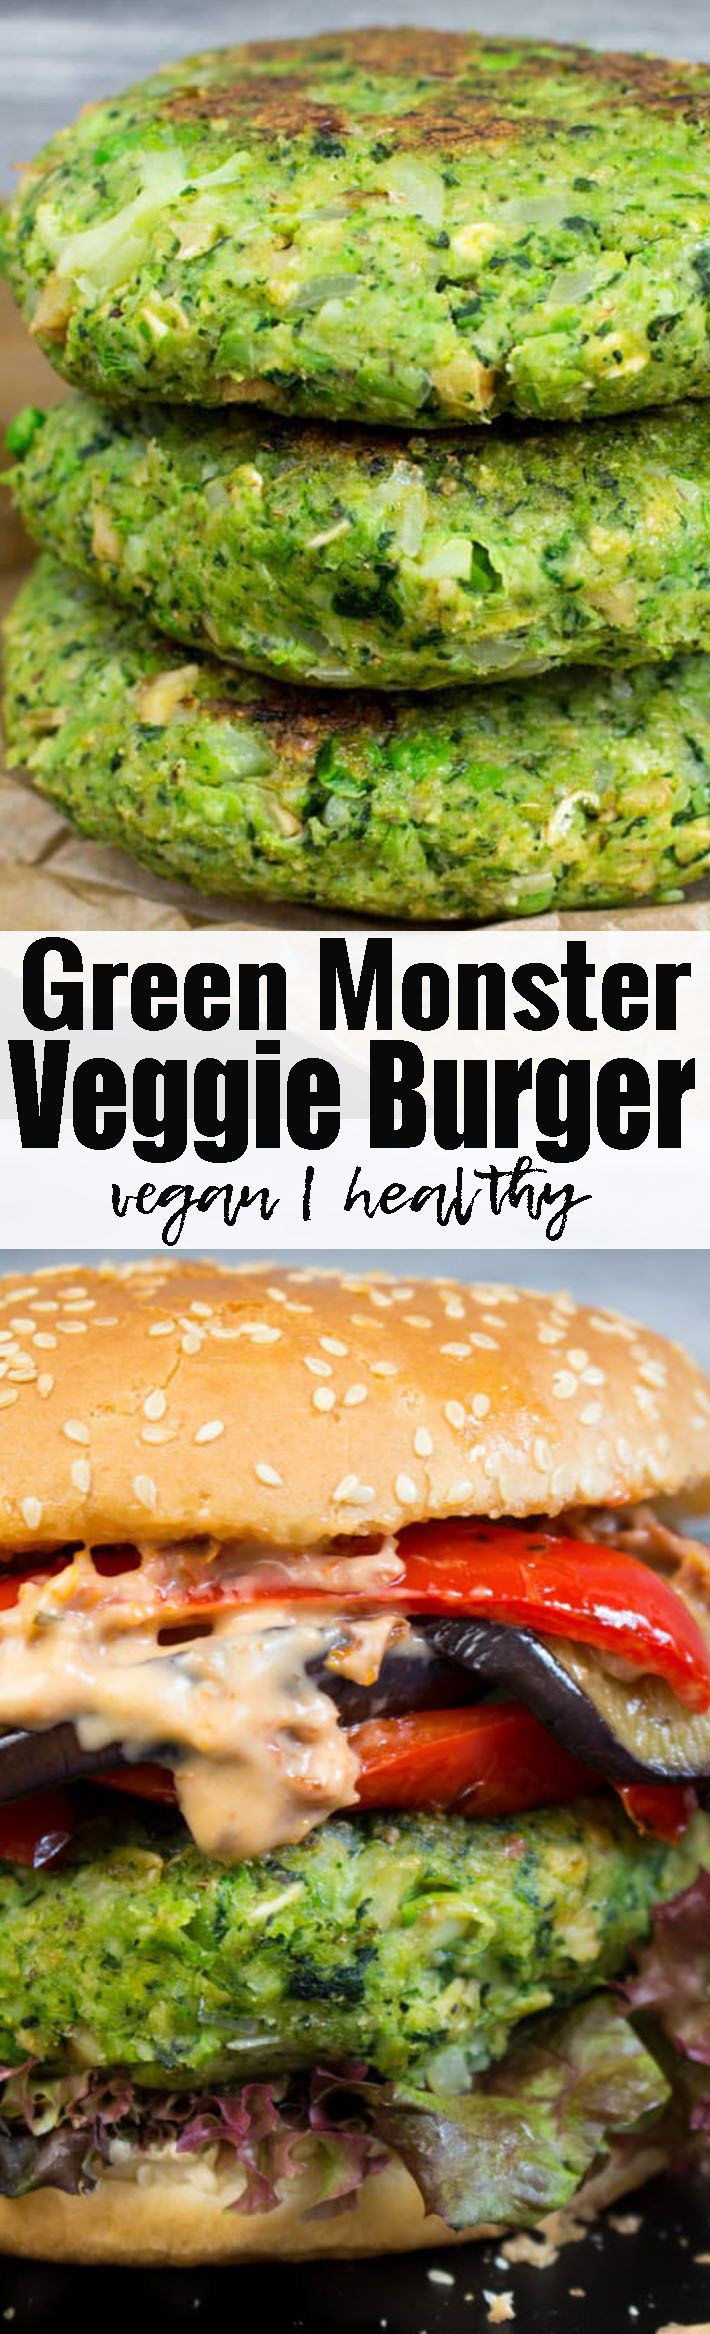 If you're looking for delicious vegan burgers, this green monster burger with kale, broccoli, and peas is perfect for you! It makes such a great vegan dinner! Find more vegan recipes at veganheaven.org!